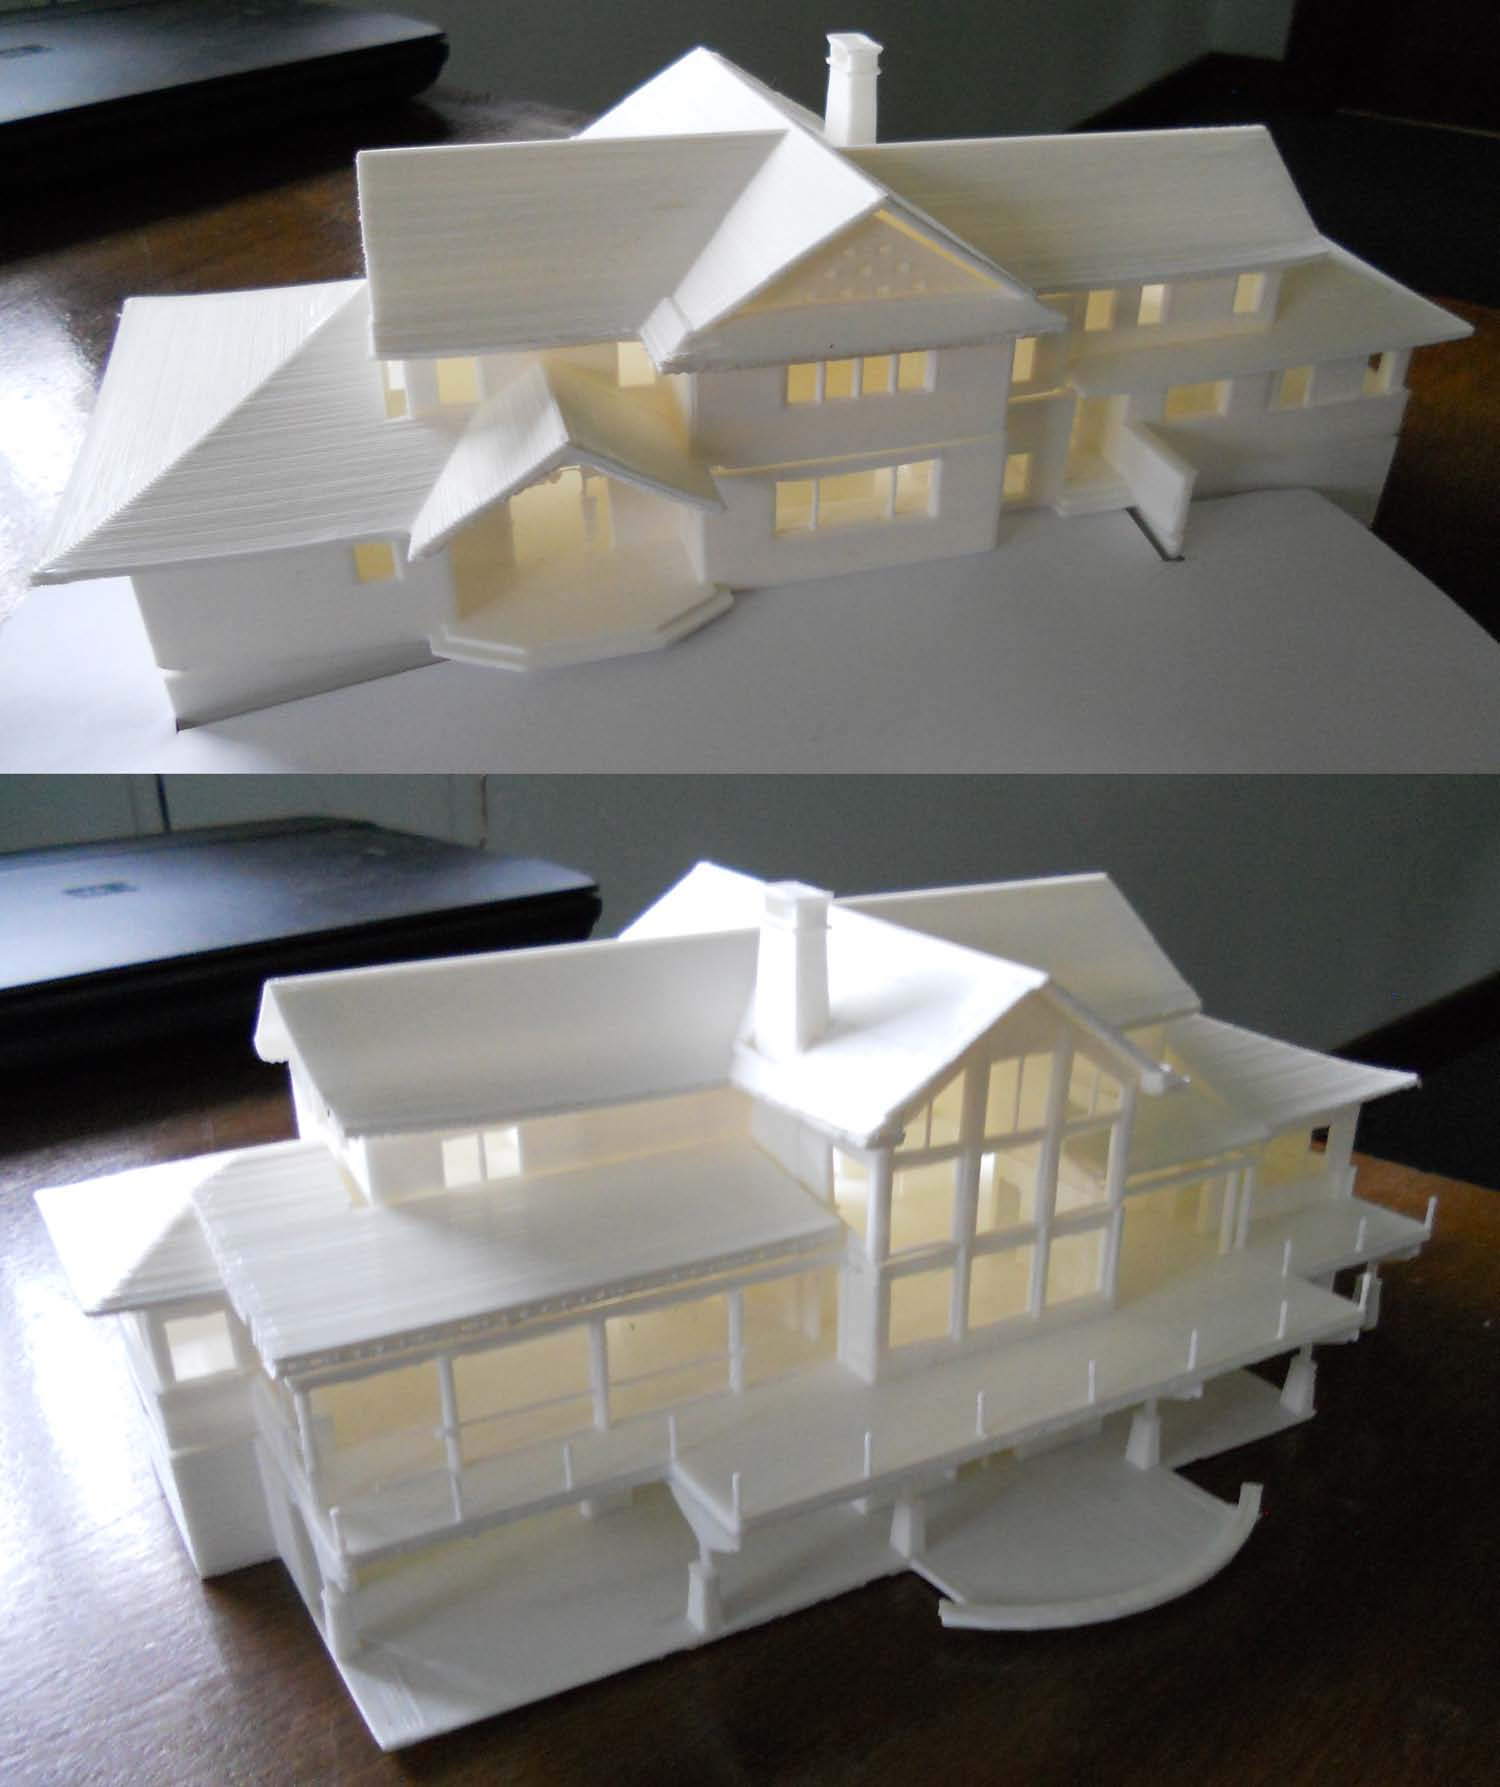 Revit and 3D printing with the Cubex Autodesk Community Revit